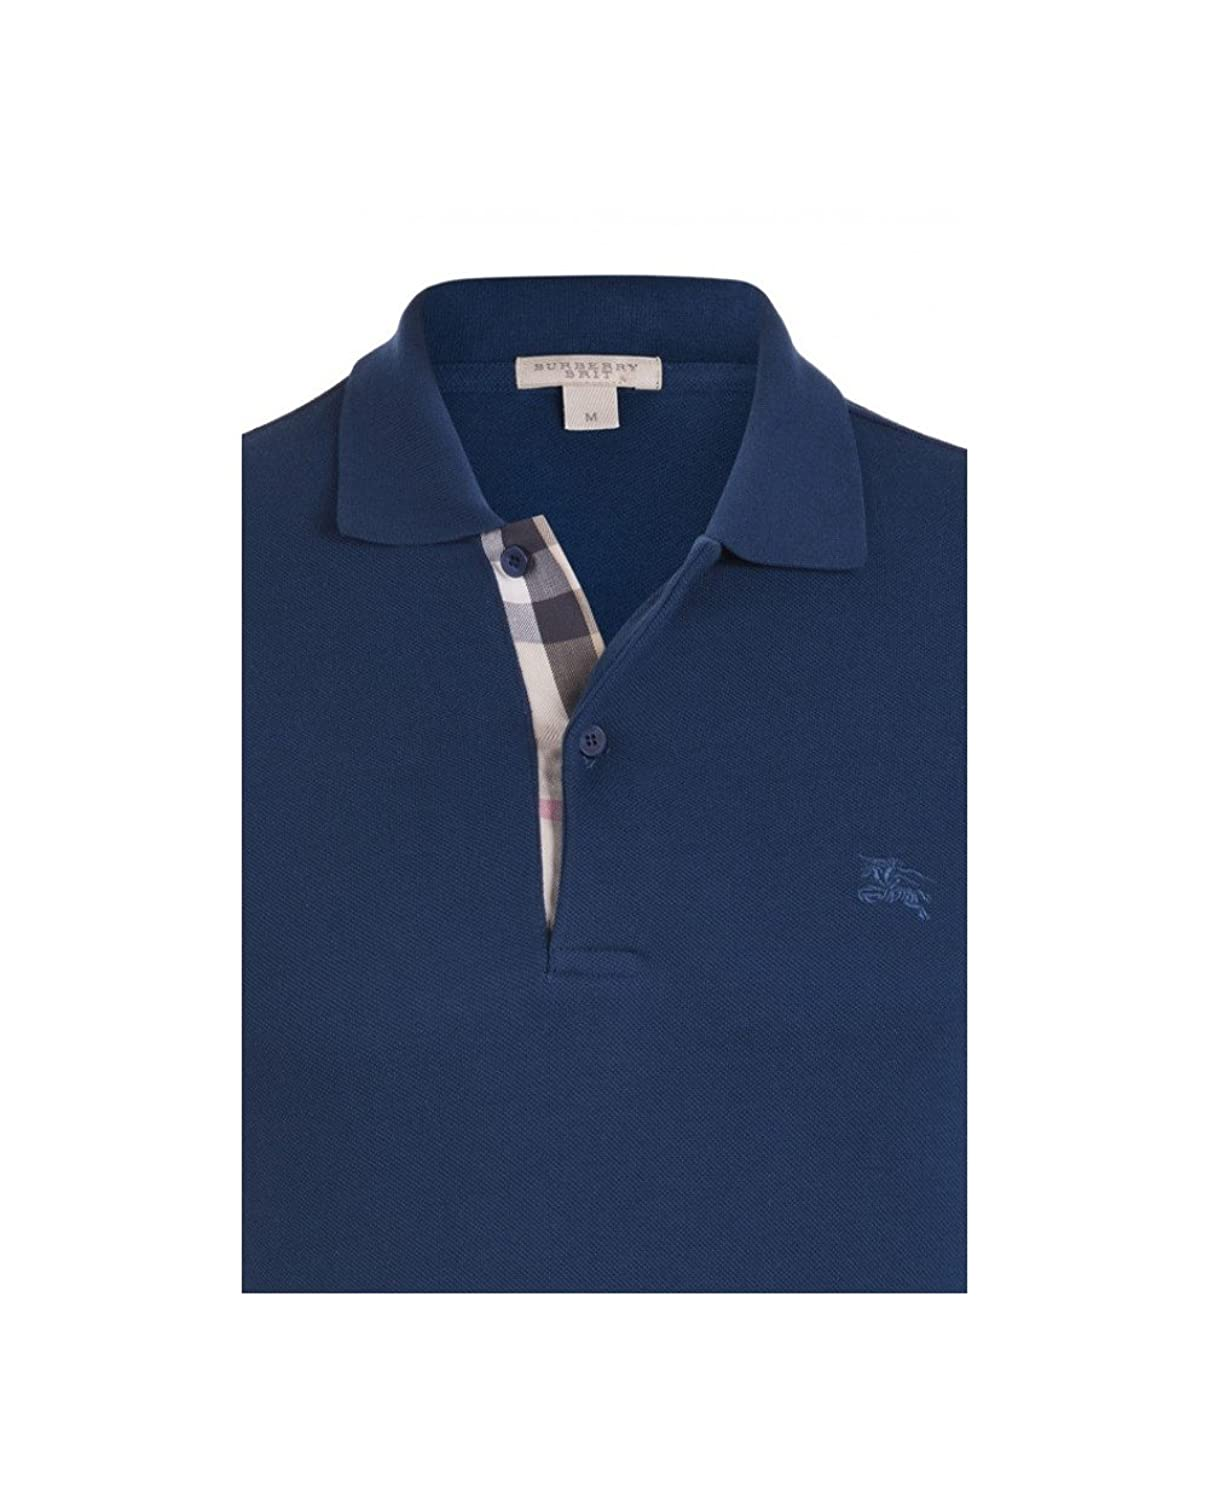 Mens Burberry Polo Shirt Sale Summer Cook